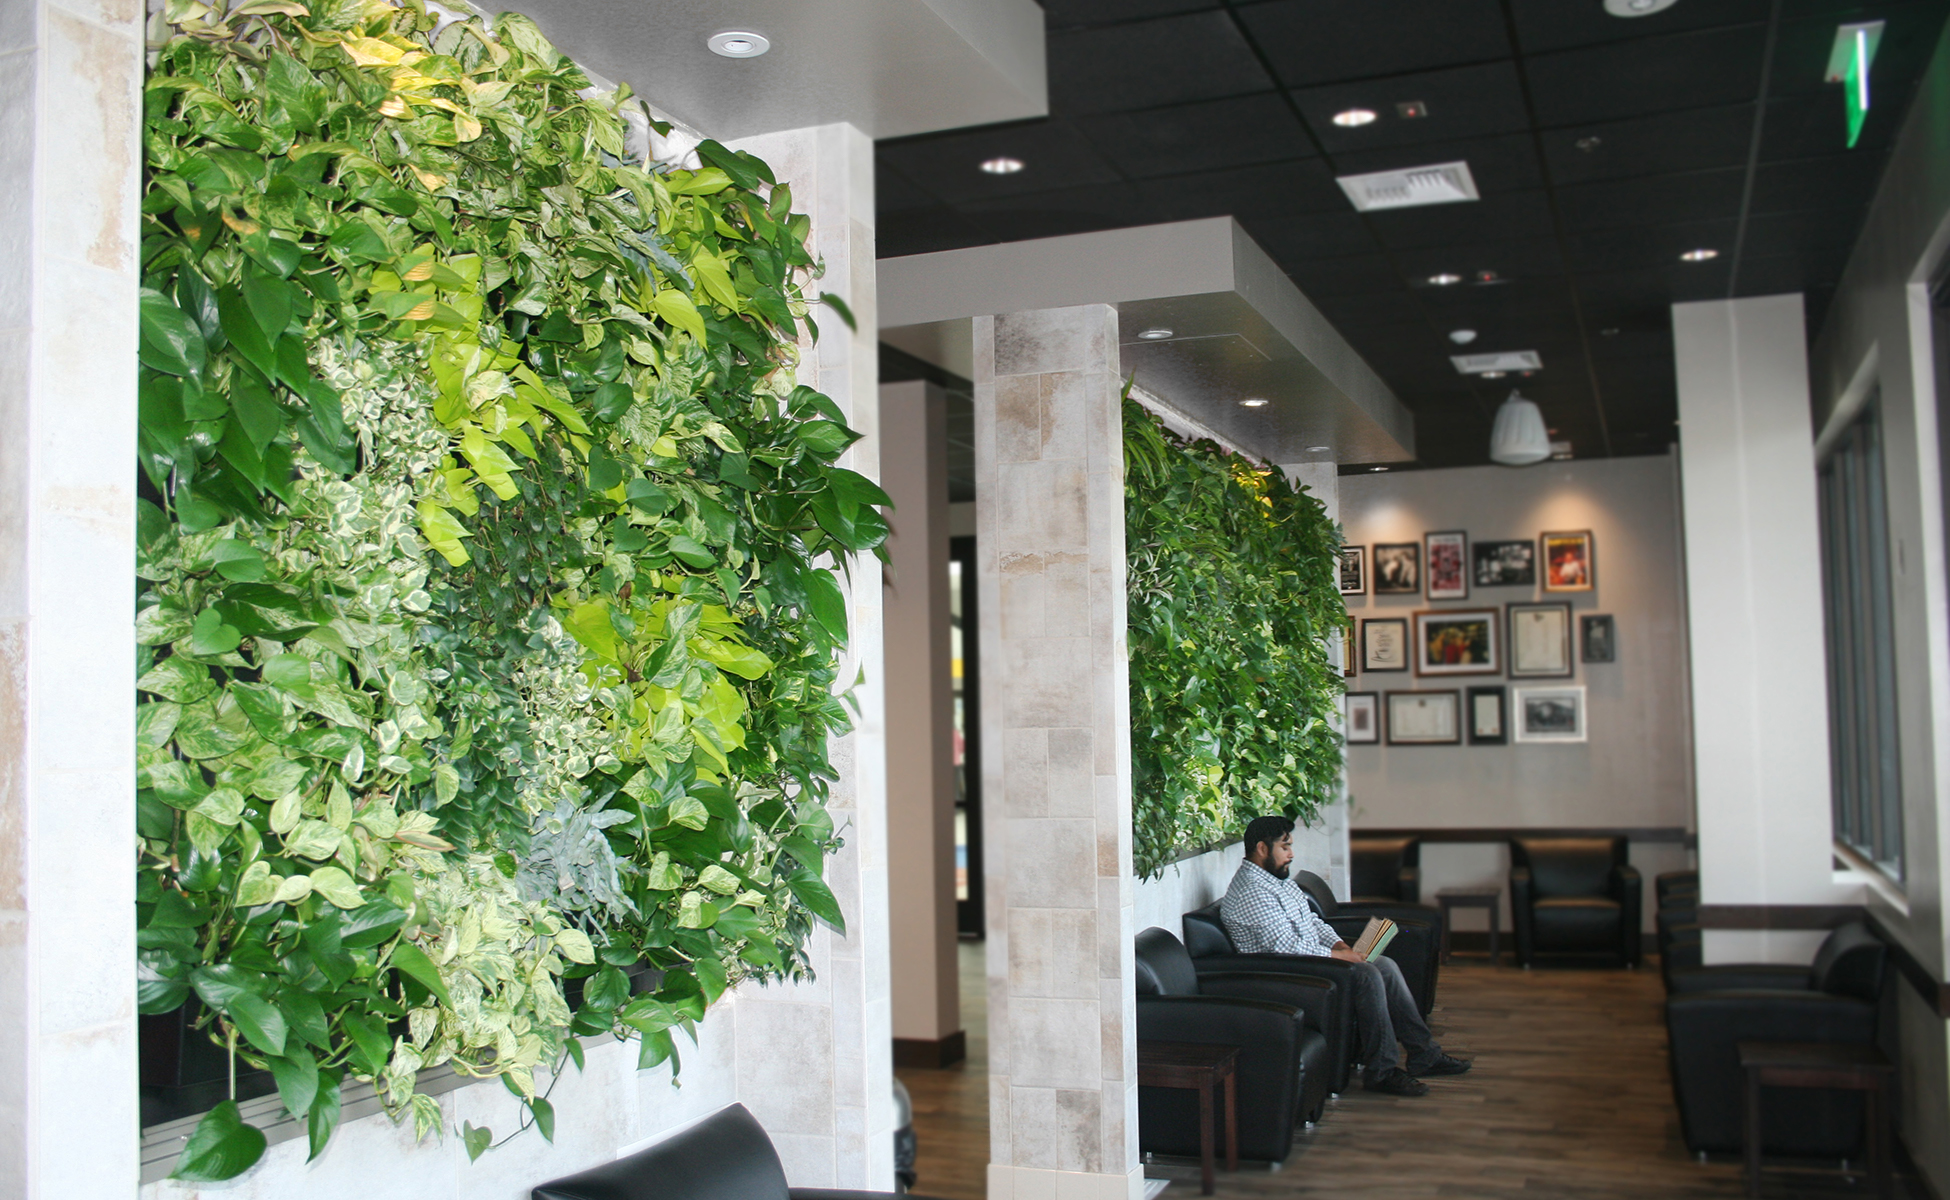 Attirant Indoor Living Walls Such As This One Improve Indoor Air Quality.